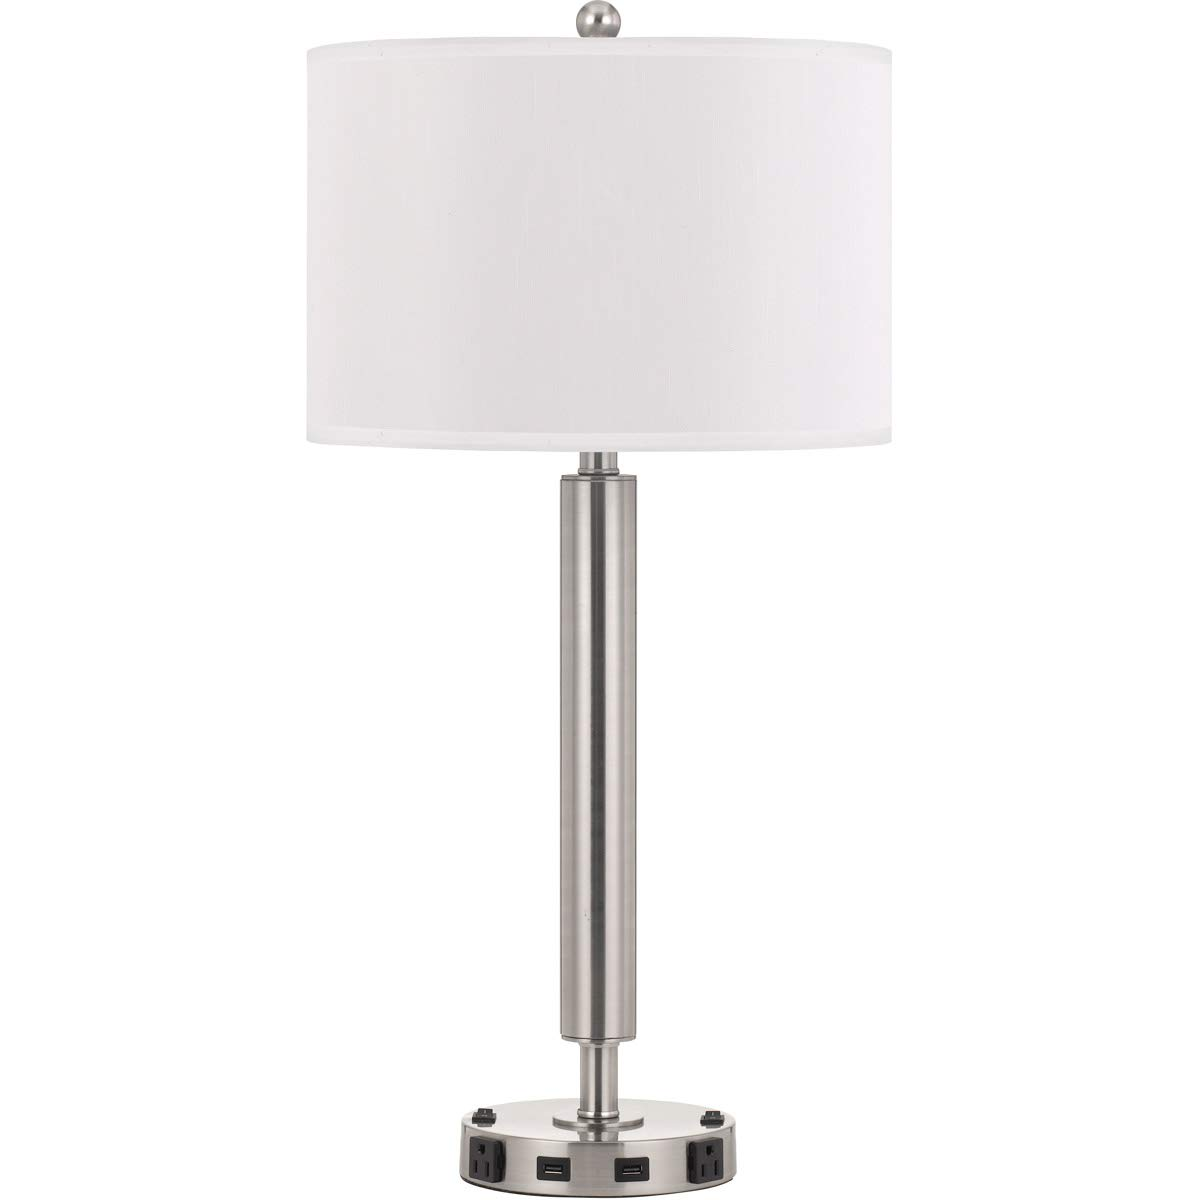 Table lamps 2 light fixtures with brushed steel finish metal material e26 bulb 15 120 watts amazon com